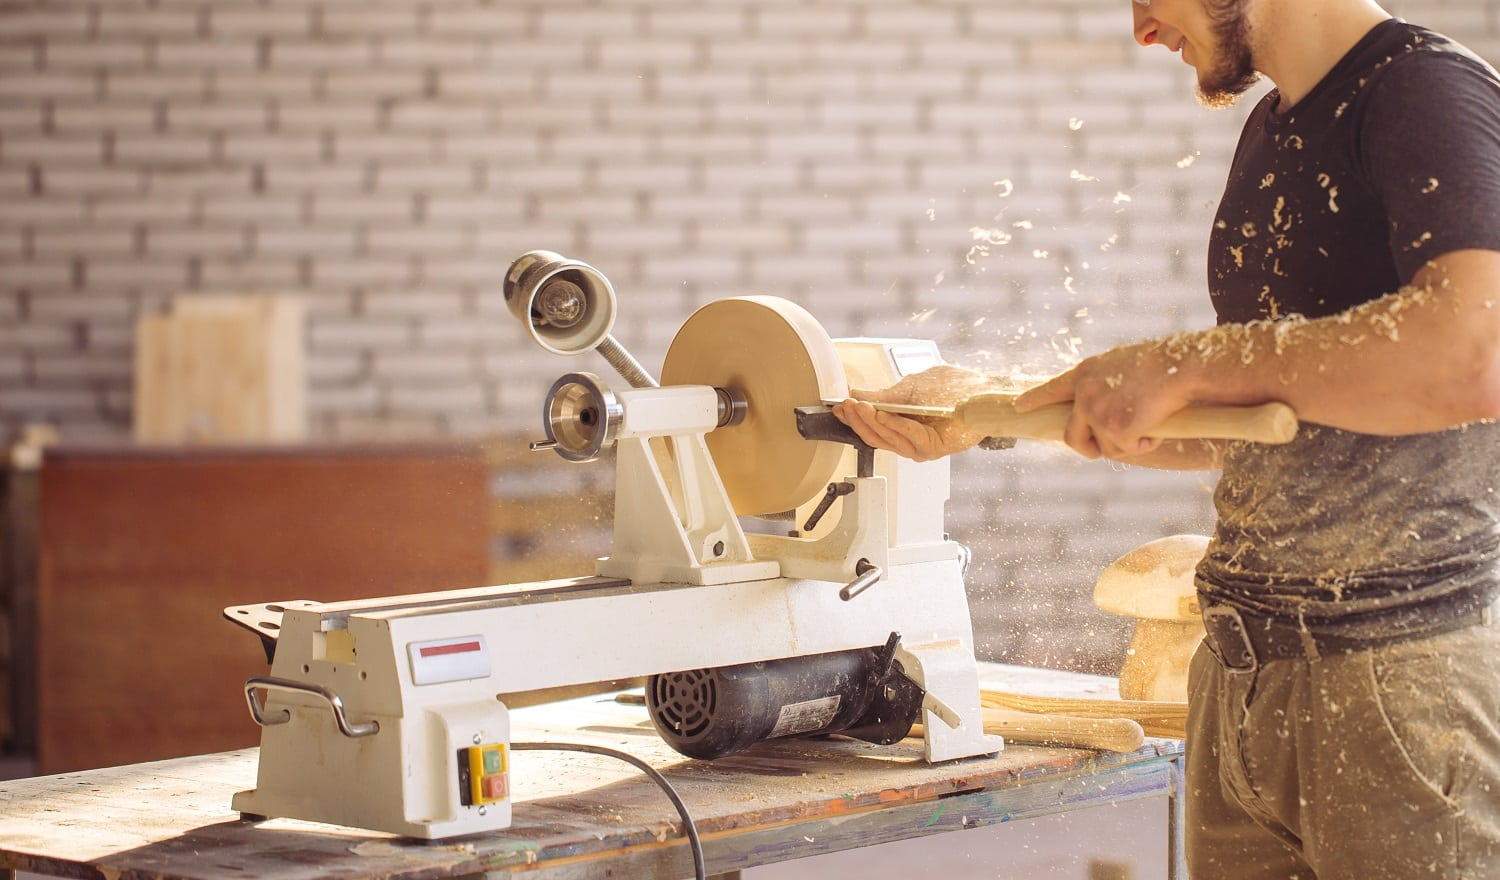 Young carpenter processing wooden plank on special woodworking machine